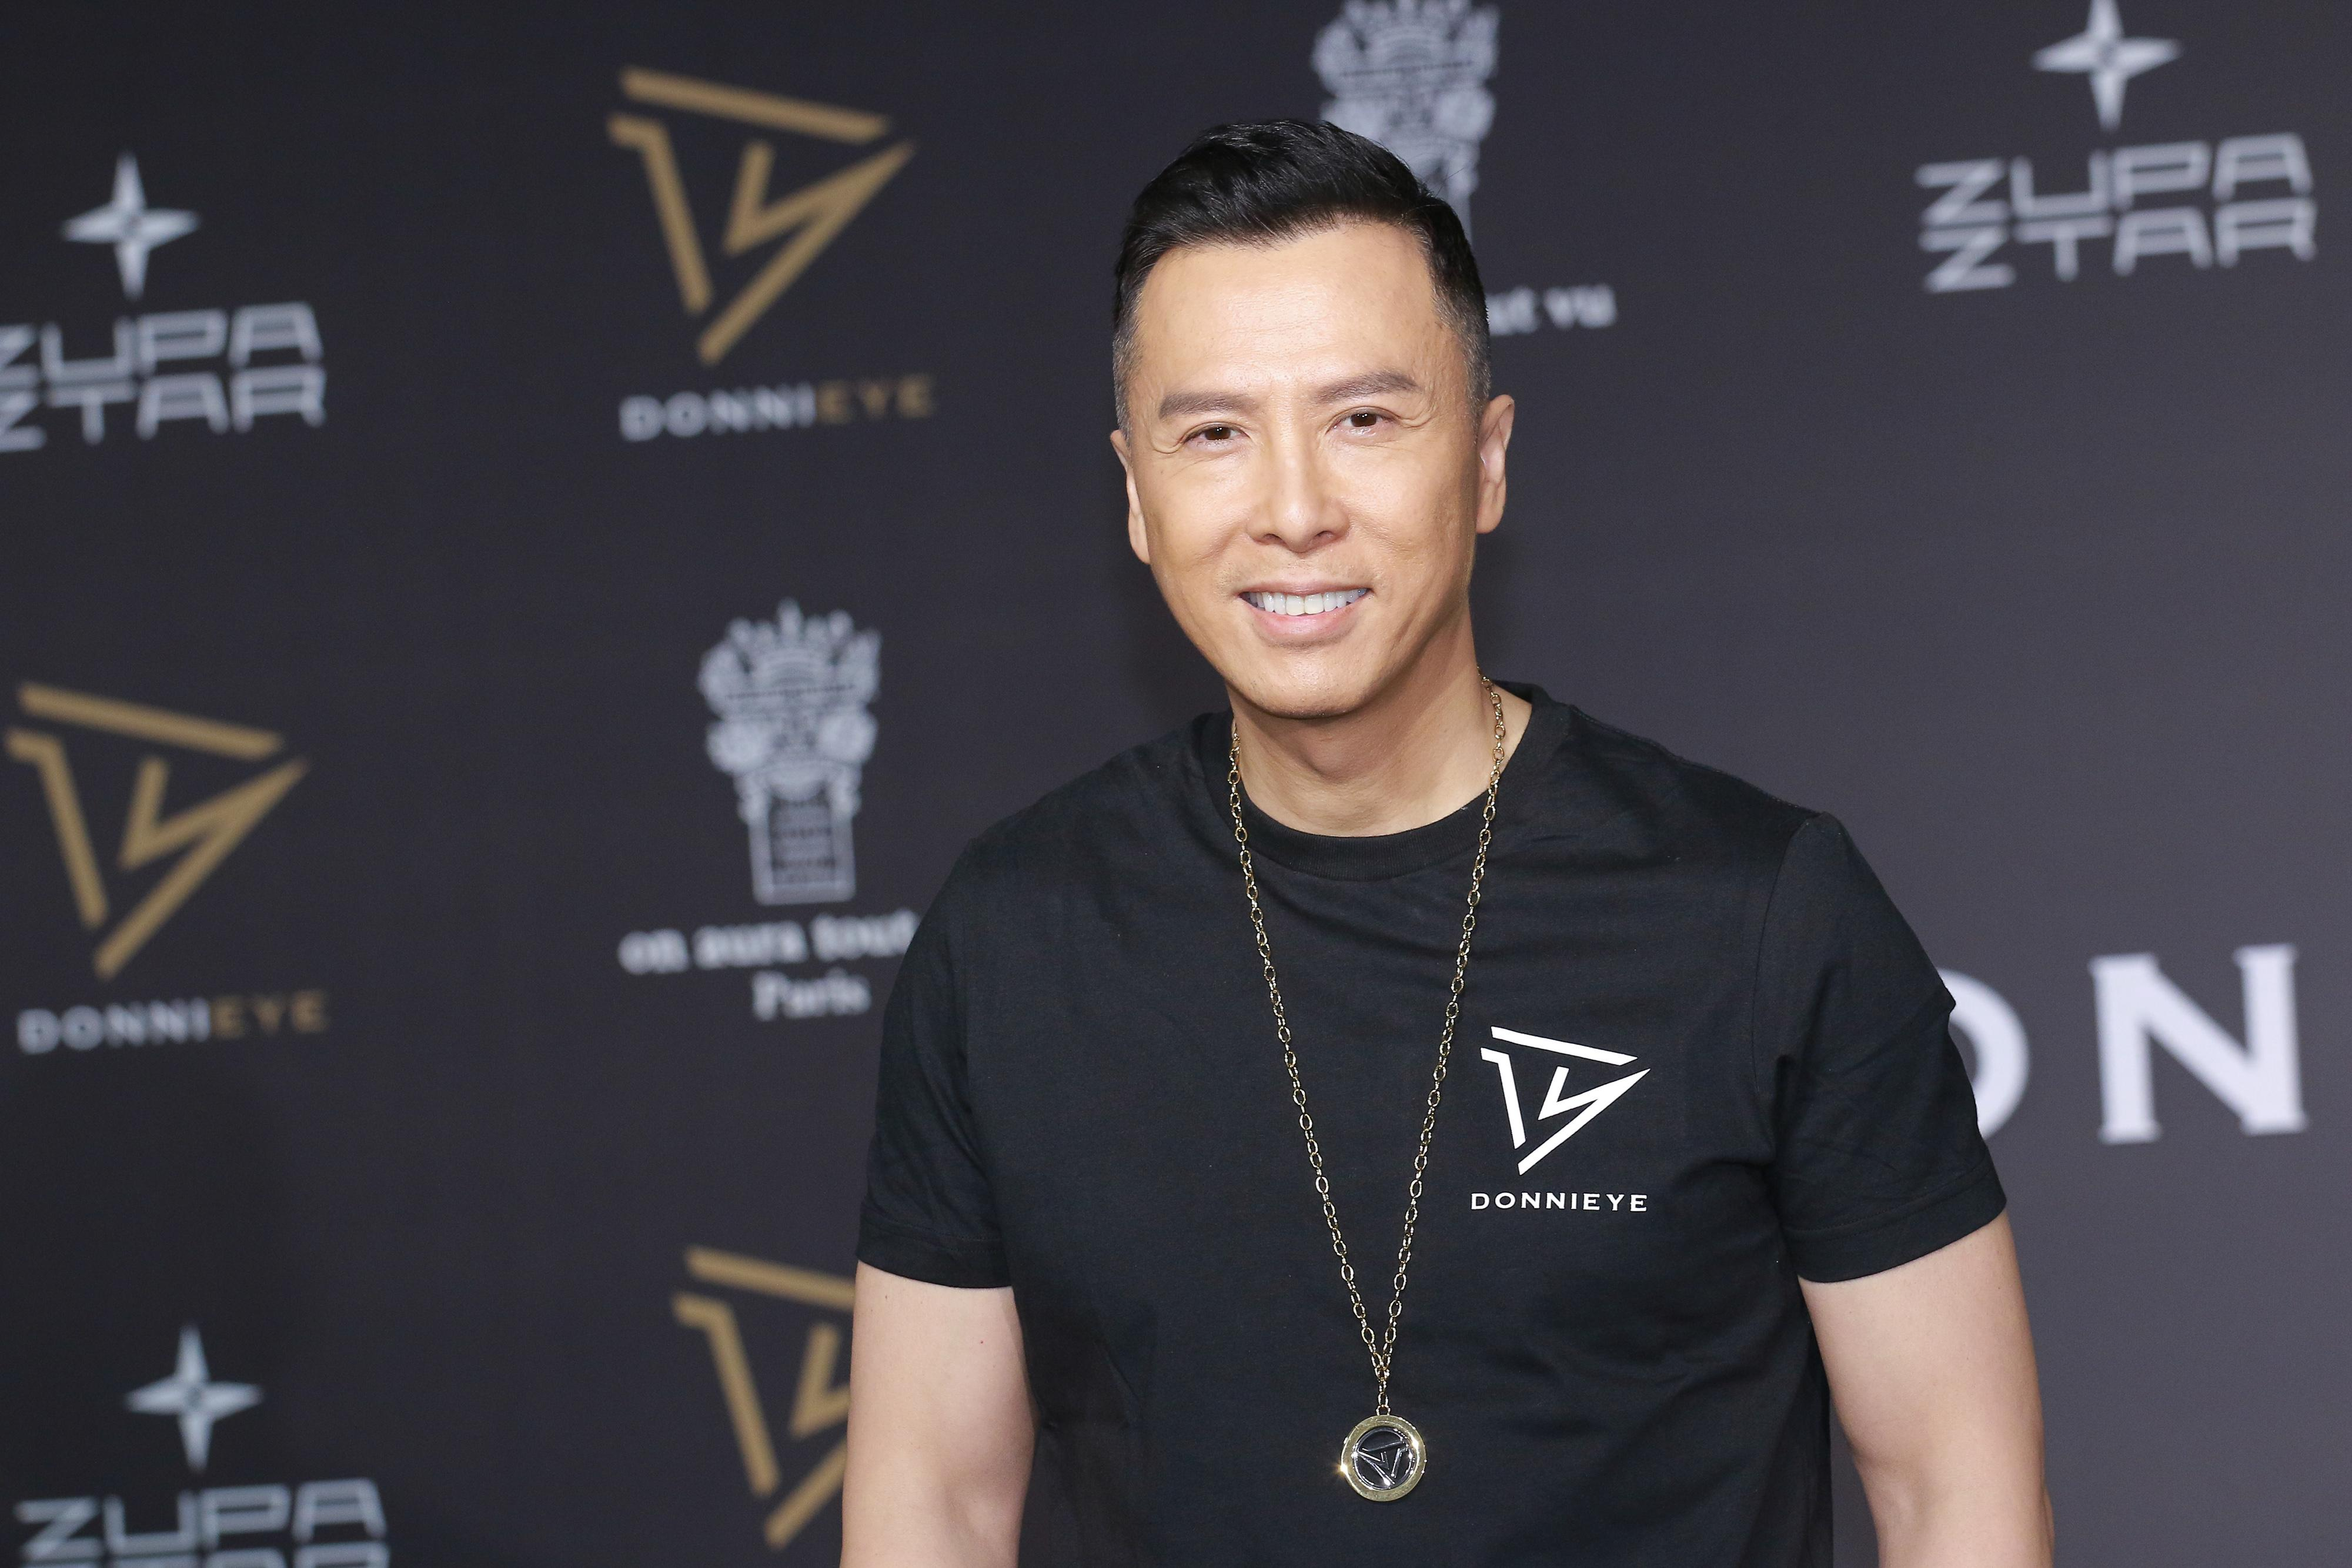 Donnie Yen visiting Singapore on 9-10 December to promote 'Ip Man 4' film